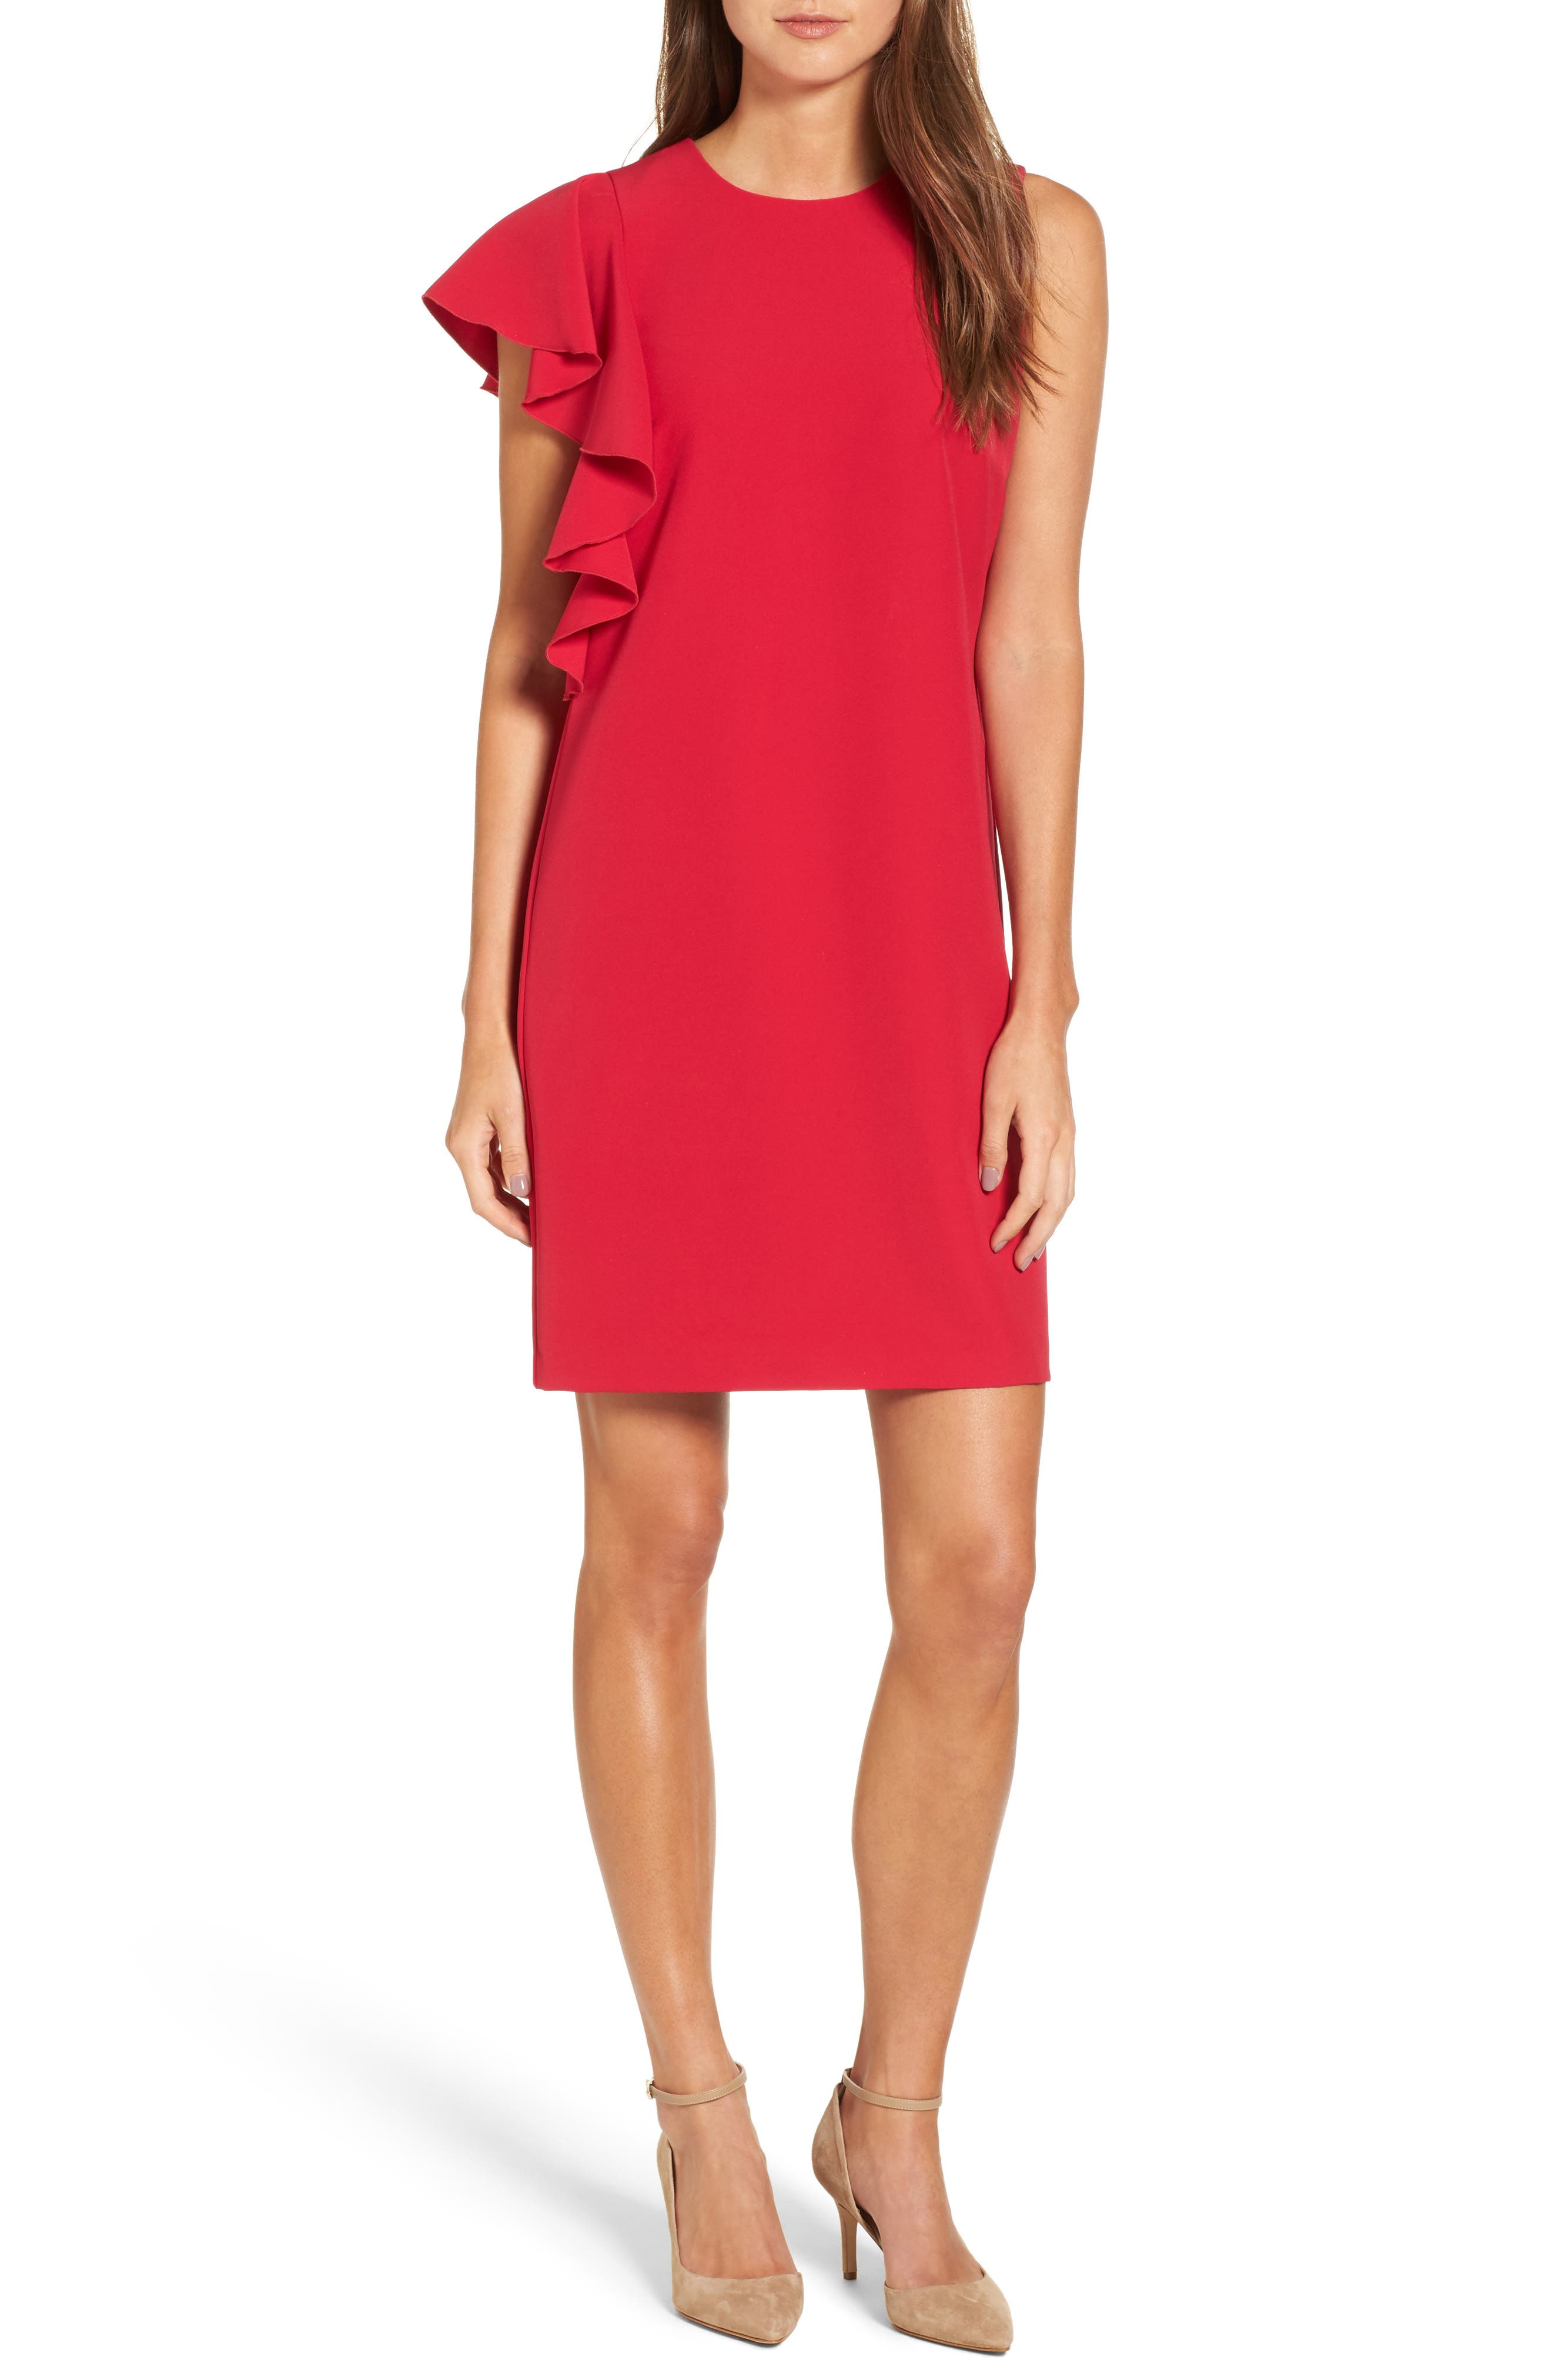 Maggy London Dream Crepe Dress